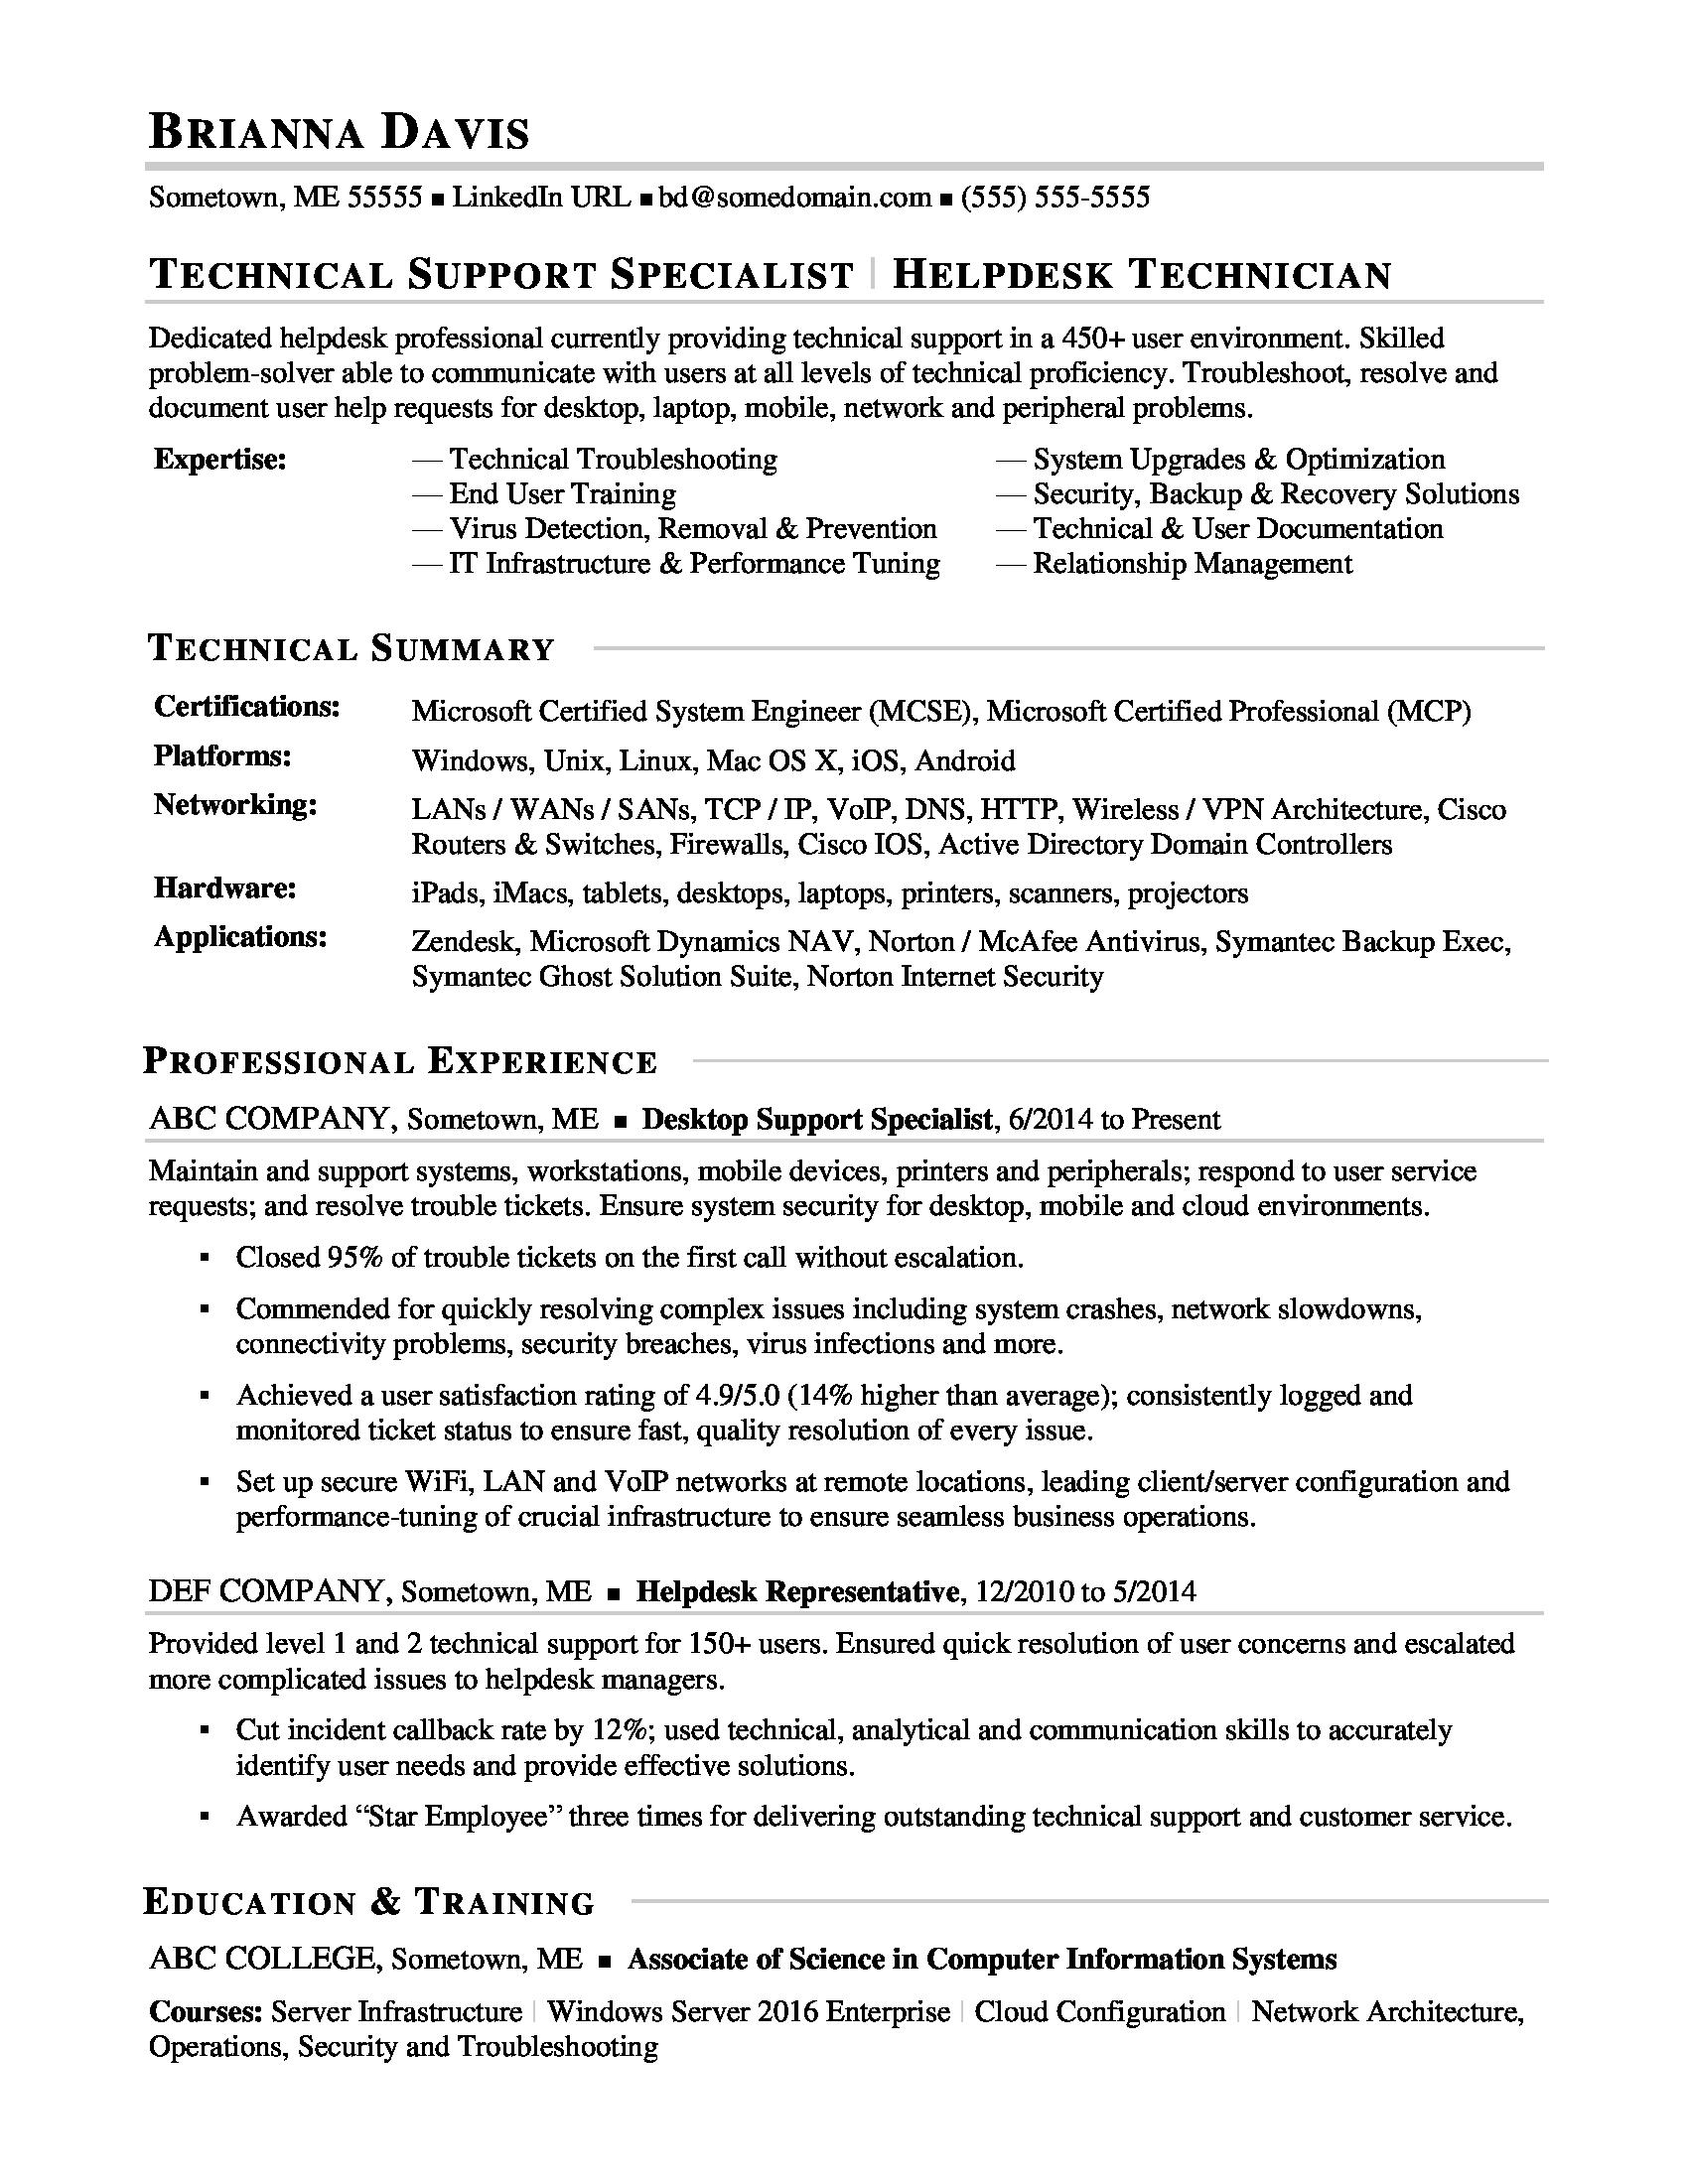 sample resume for experienced it help desk employee monster system support analyst Resume System Support Analyst Resume